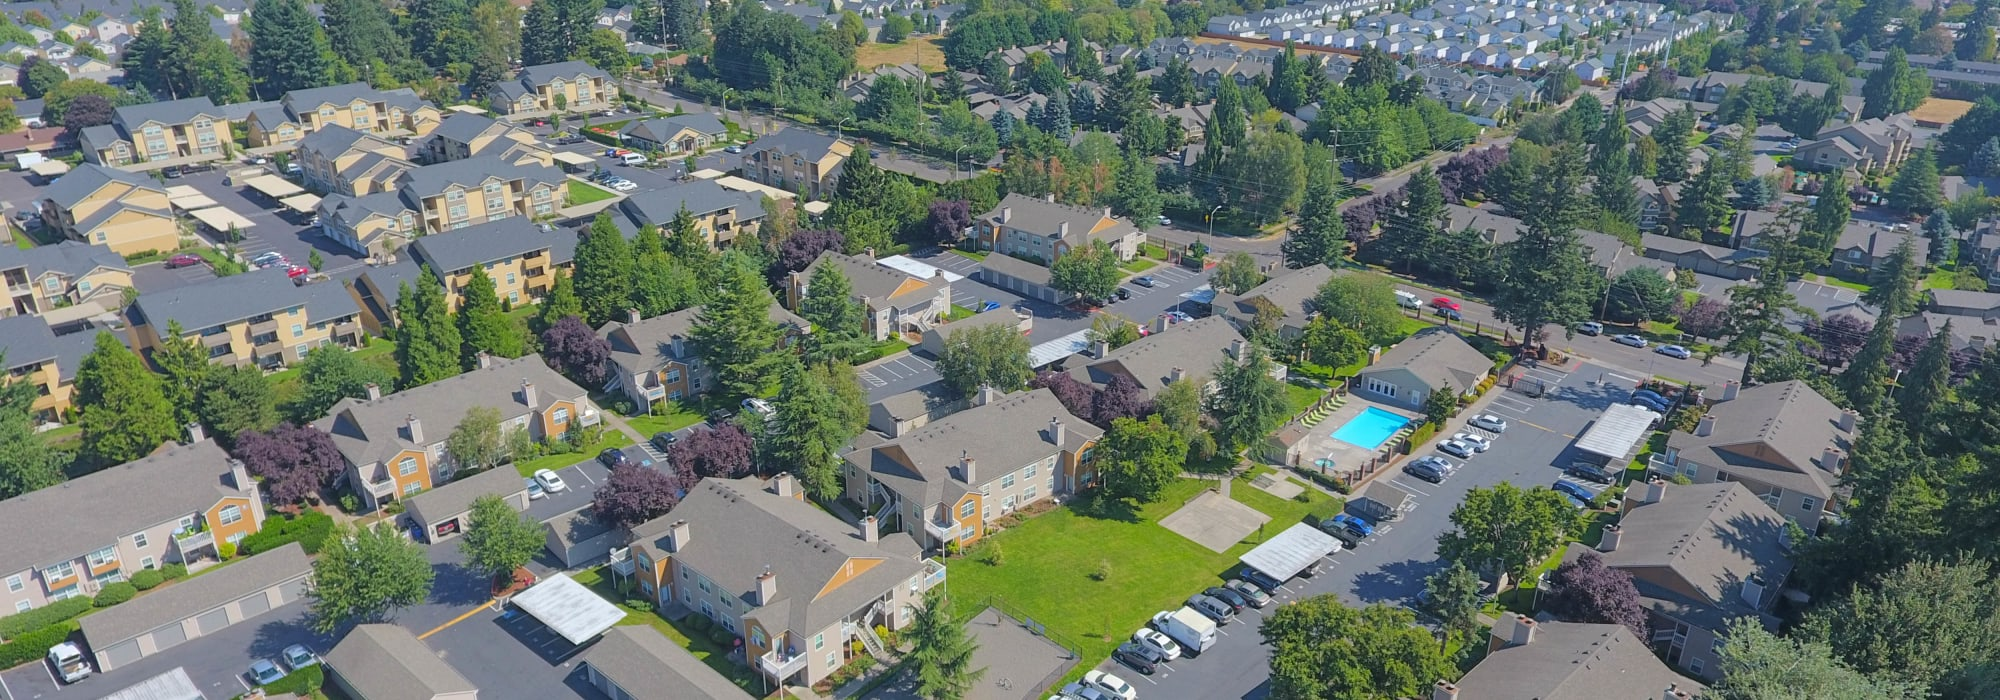 Apply to Carriage Park Apartments in Vancouver, Washington